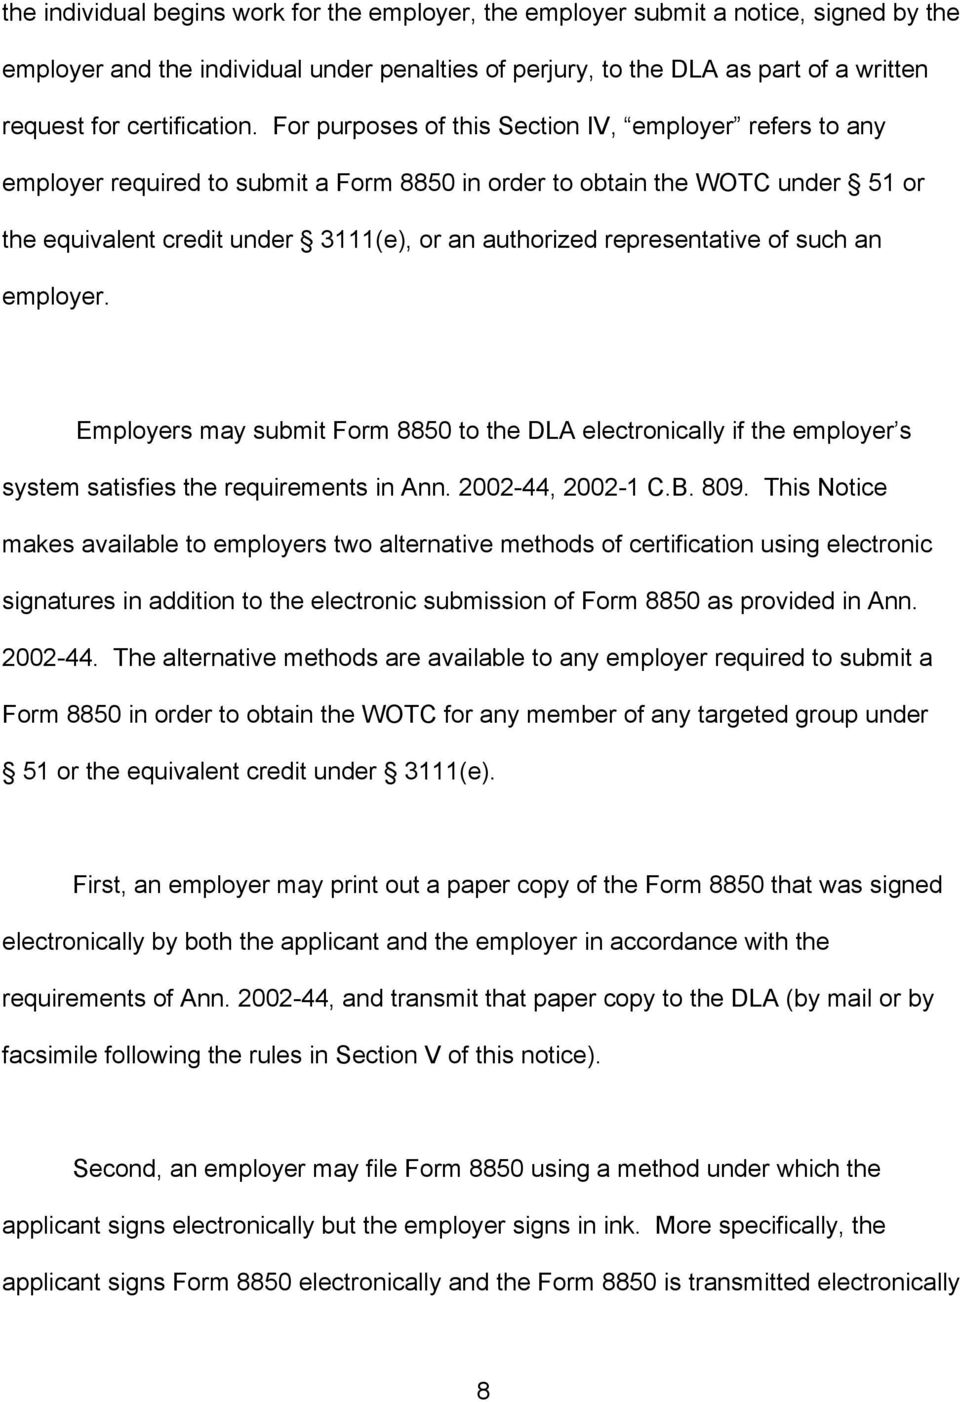 For purposes of this Section IV, employer refers to any employer required to submit a Form 8850 in order to obtain the WOTC under 51 or the equivalent credit under 3111(e), or an authorized